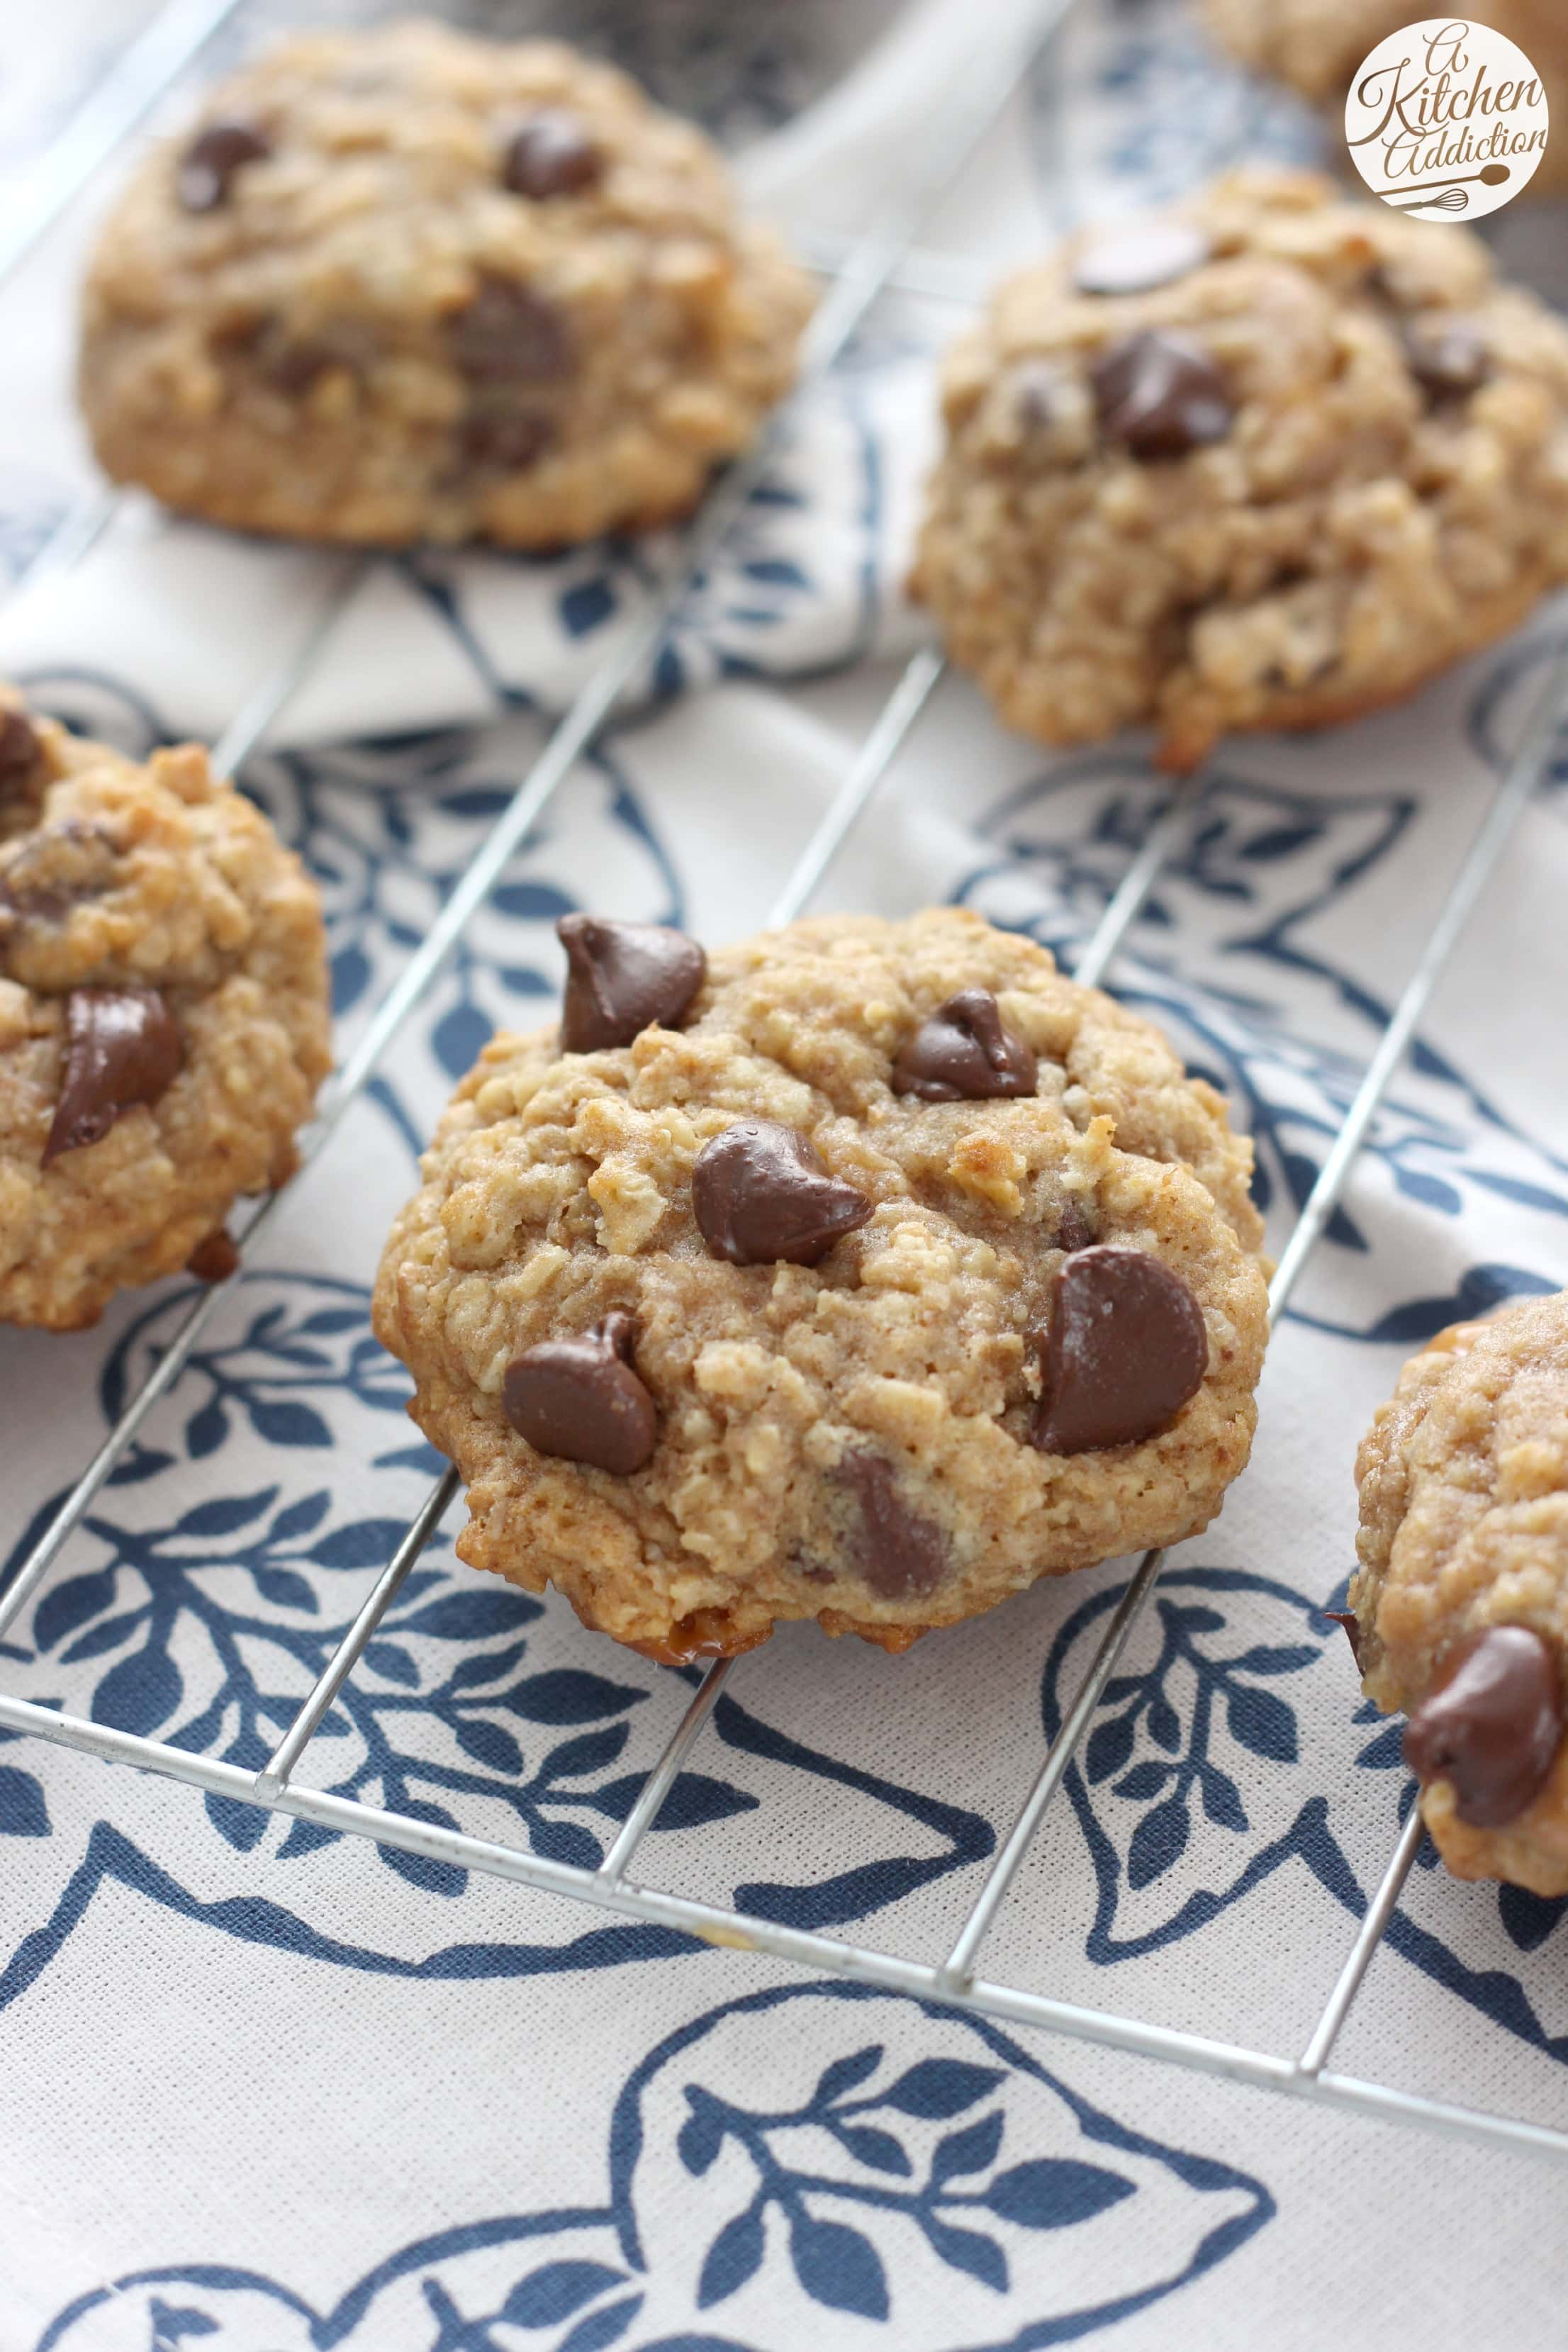 Caramel dark chocolate chip oat cookies 100 whole wheat a caramel dark chocolate chip oat cookies recipe l a kitchen addiction forumfinder Images